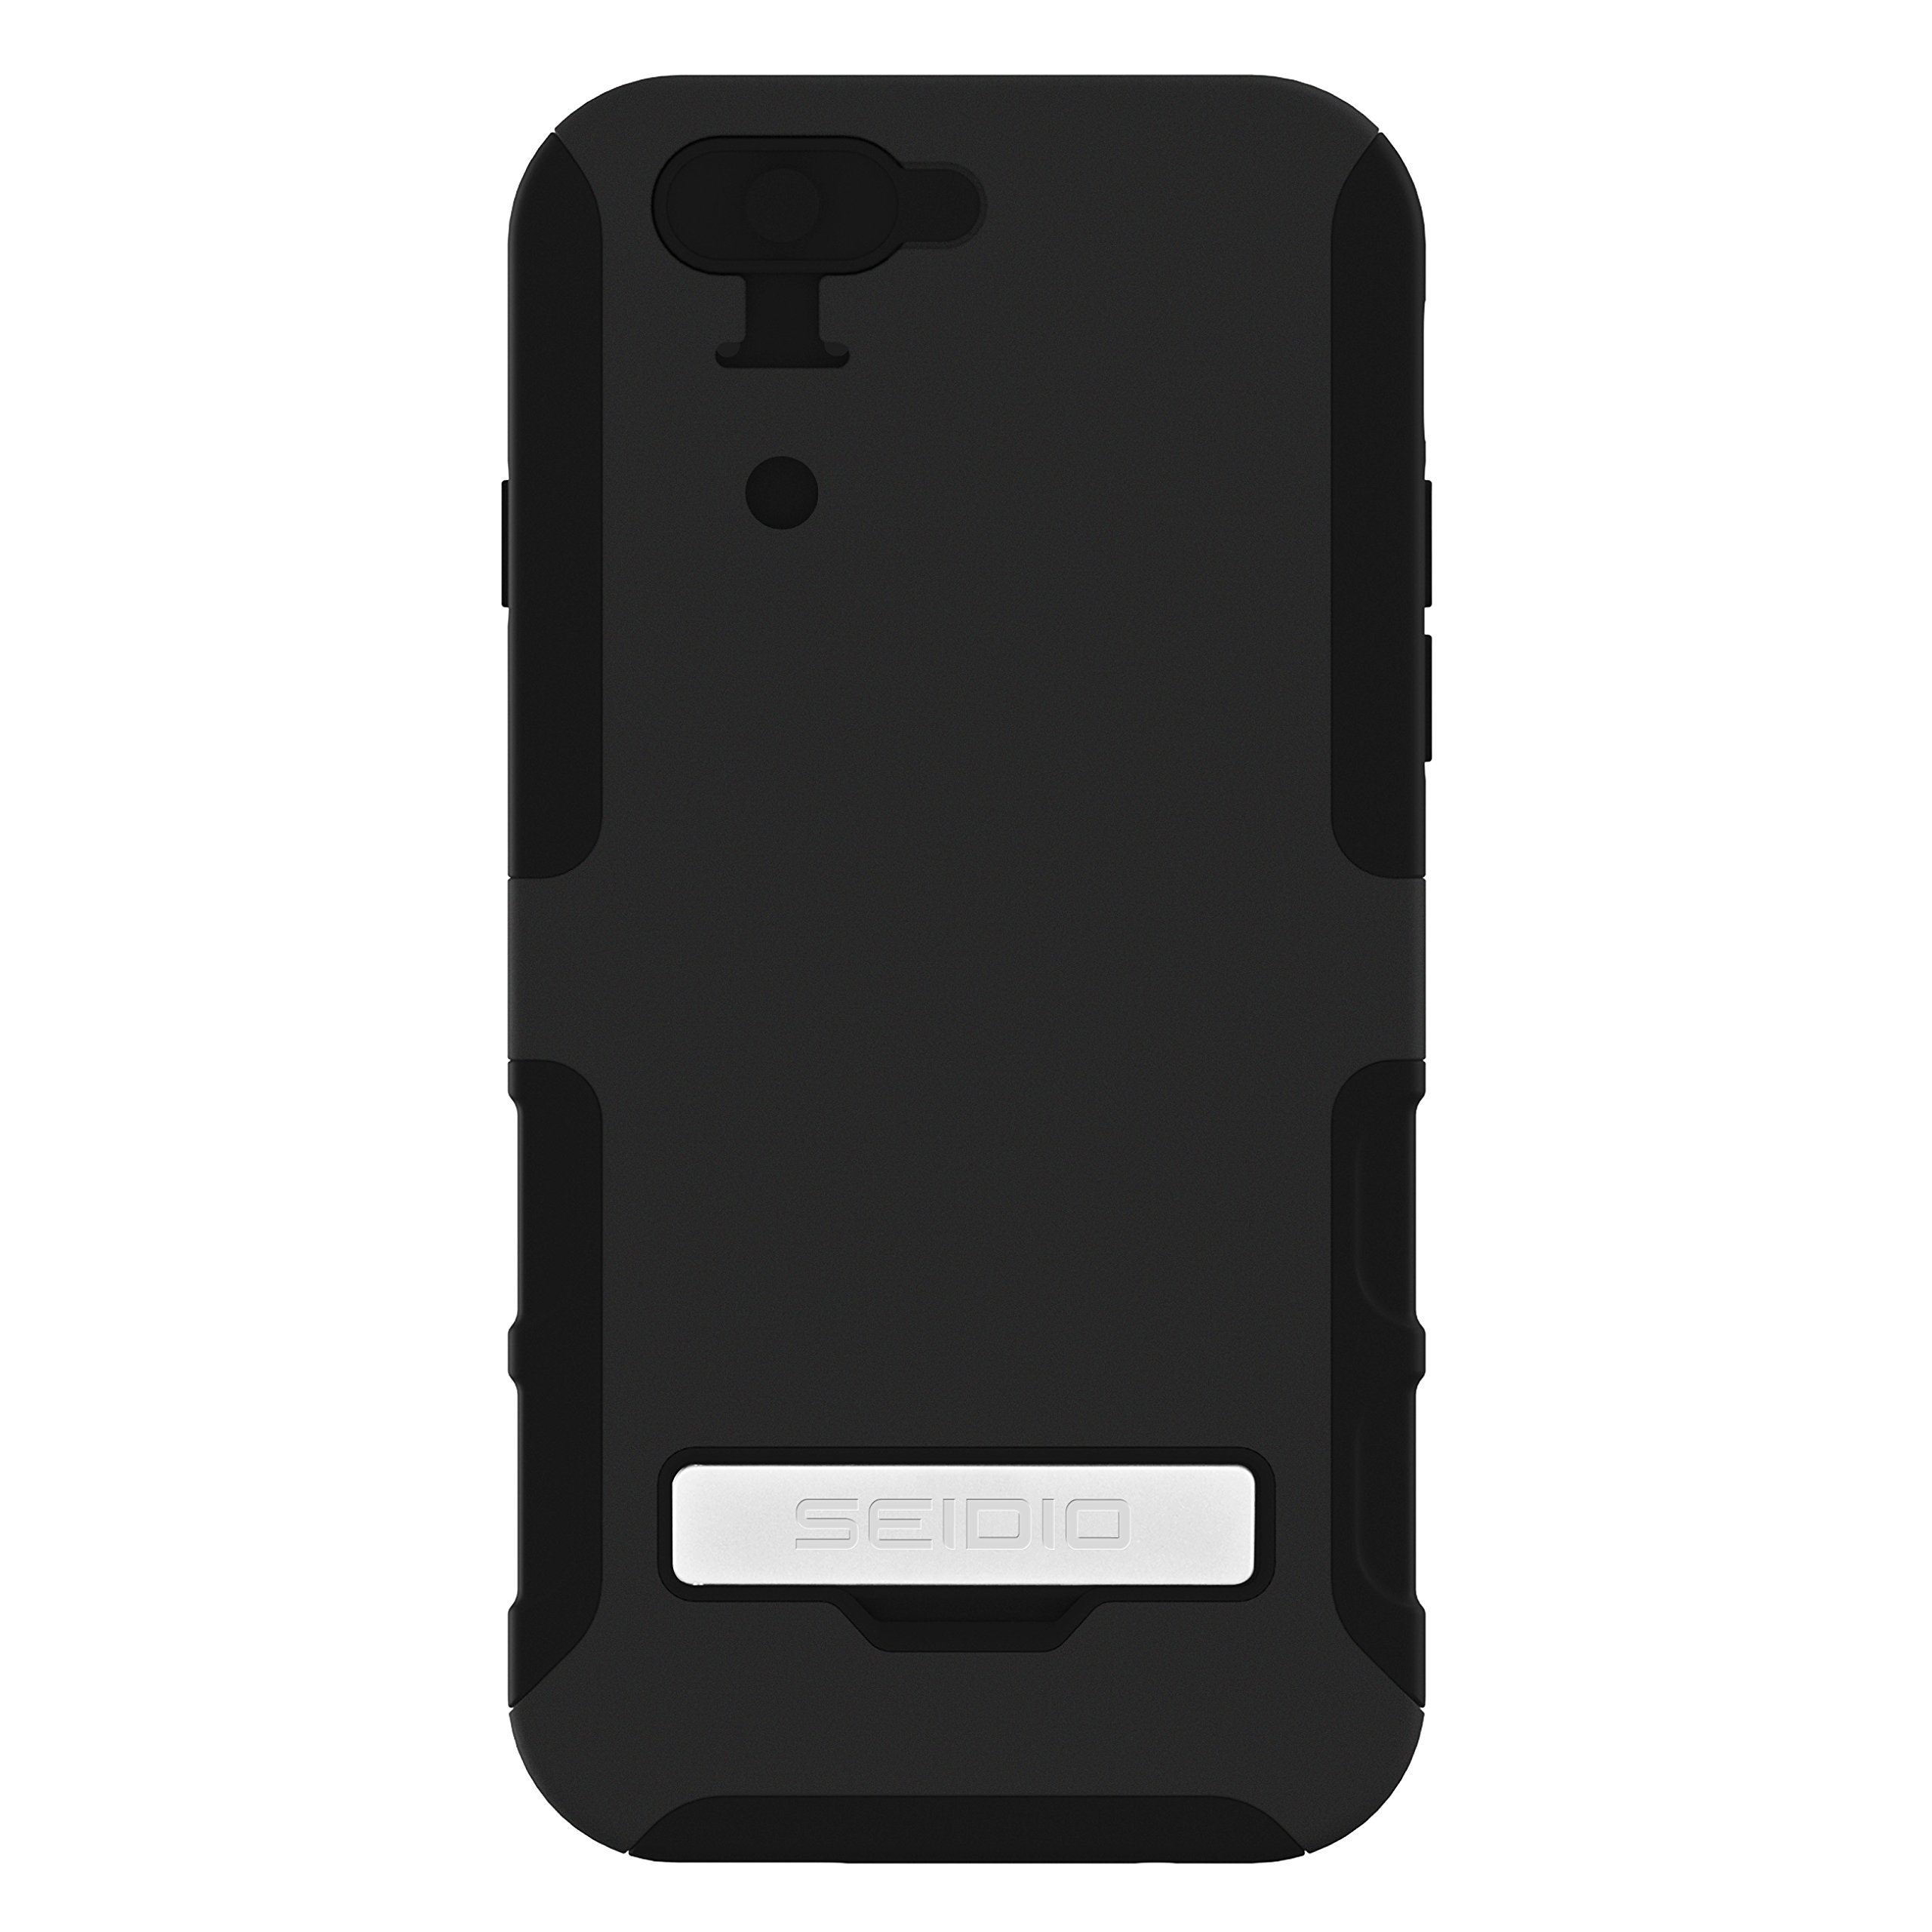 Seidio CONVERT Combo for iPhone 6 Plus - Retail Packaging - Black by Seidio